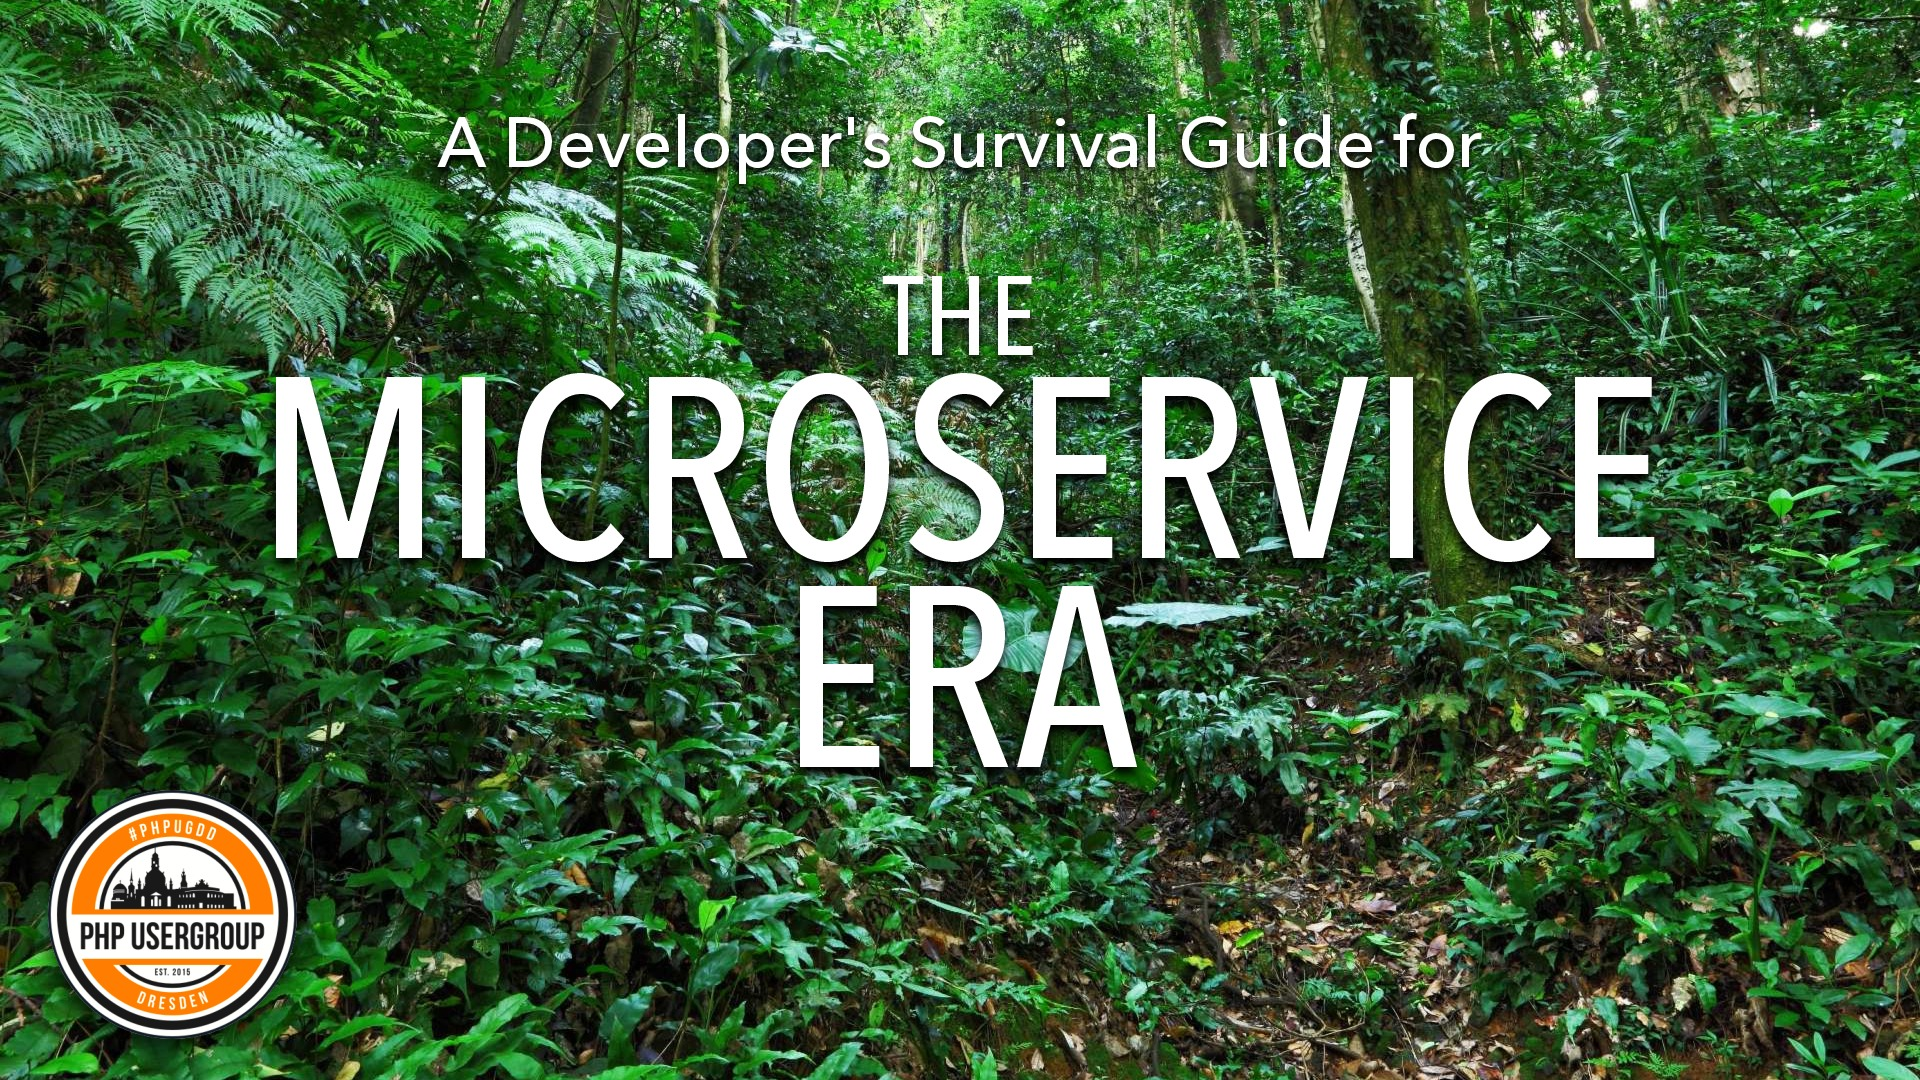 A Developer's Survival Guide for the Microservice Era